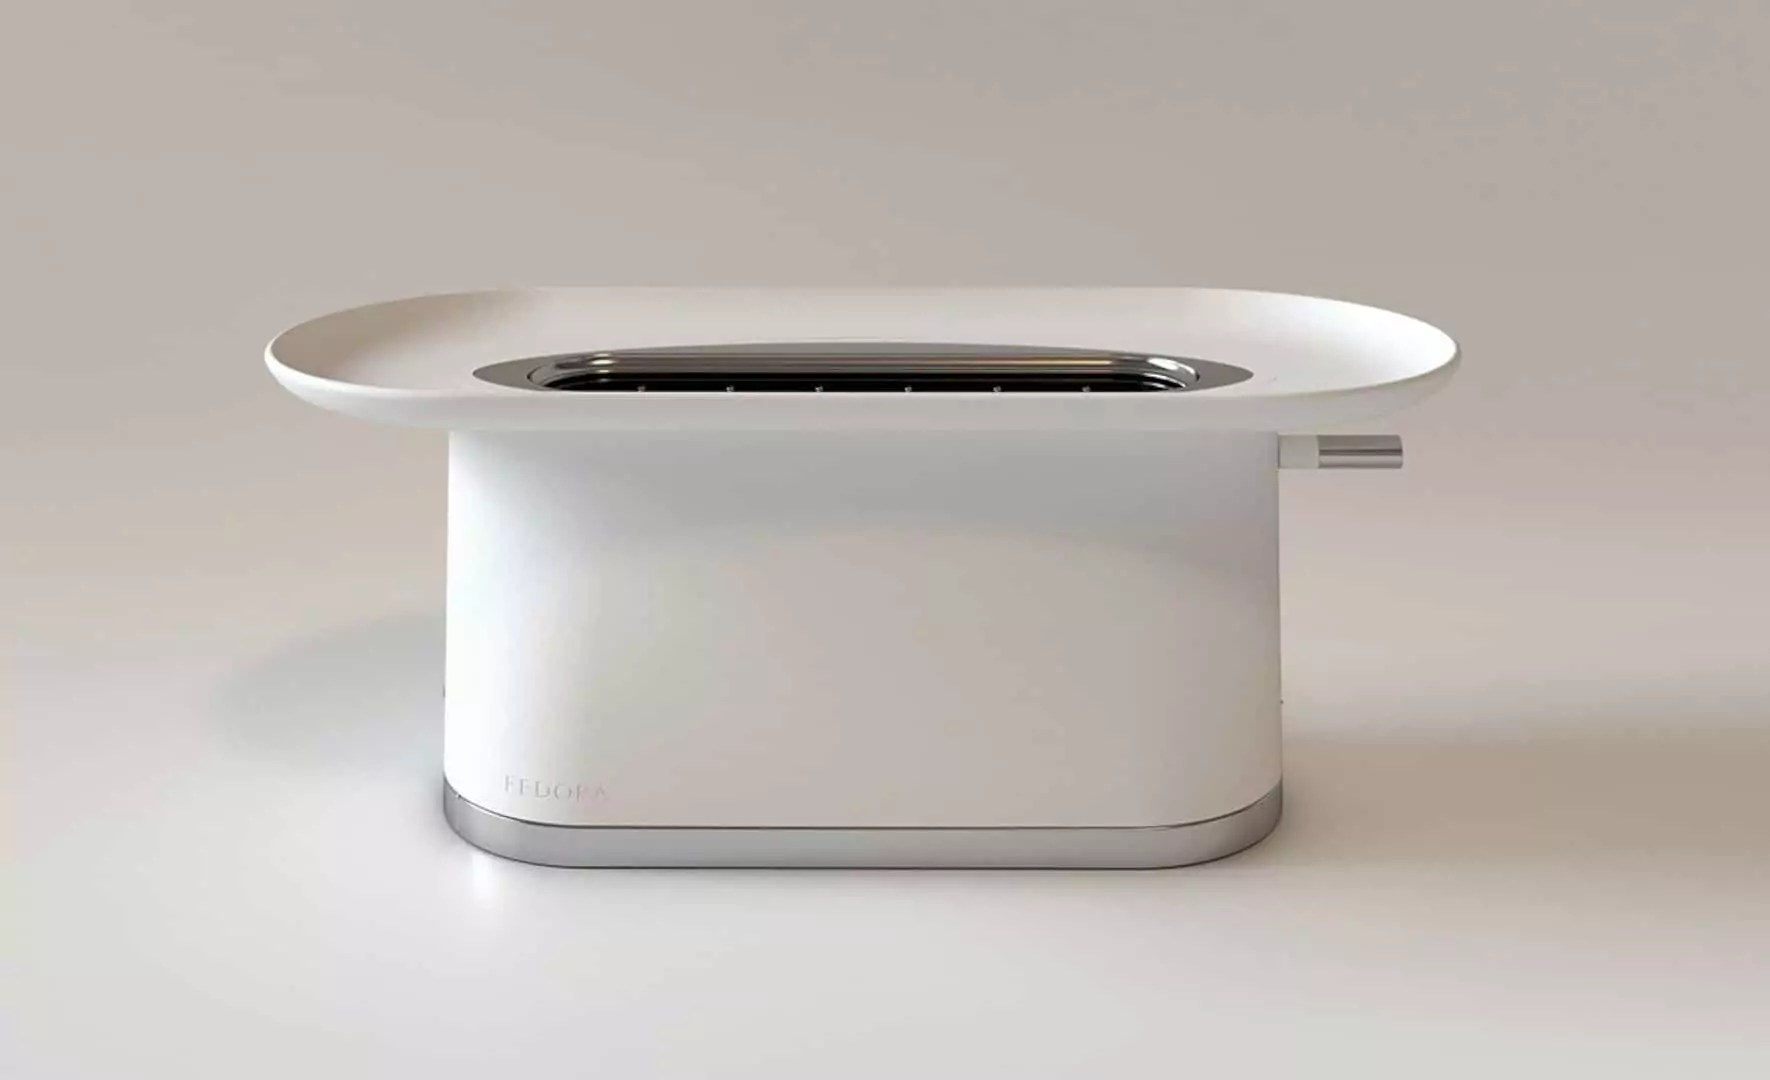 Fedora Toaster: A Magic Hat Toaster Design for Special Breakfast